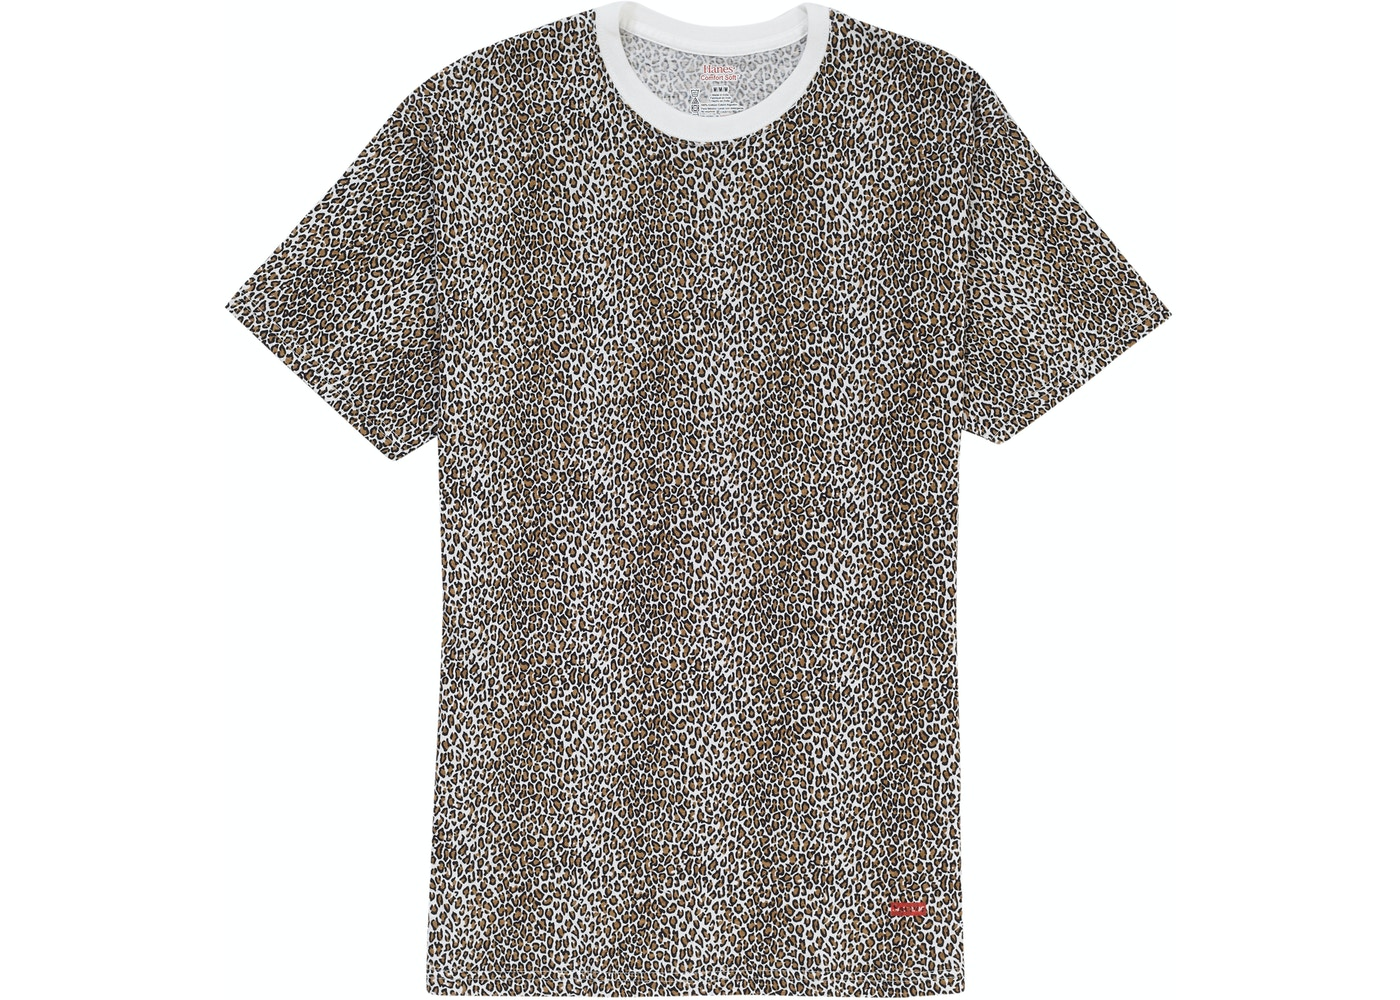 10000fe9 Supreme Hanes Leopard Tagless Tees (2 Pack) Leopard - SS19